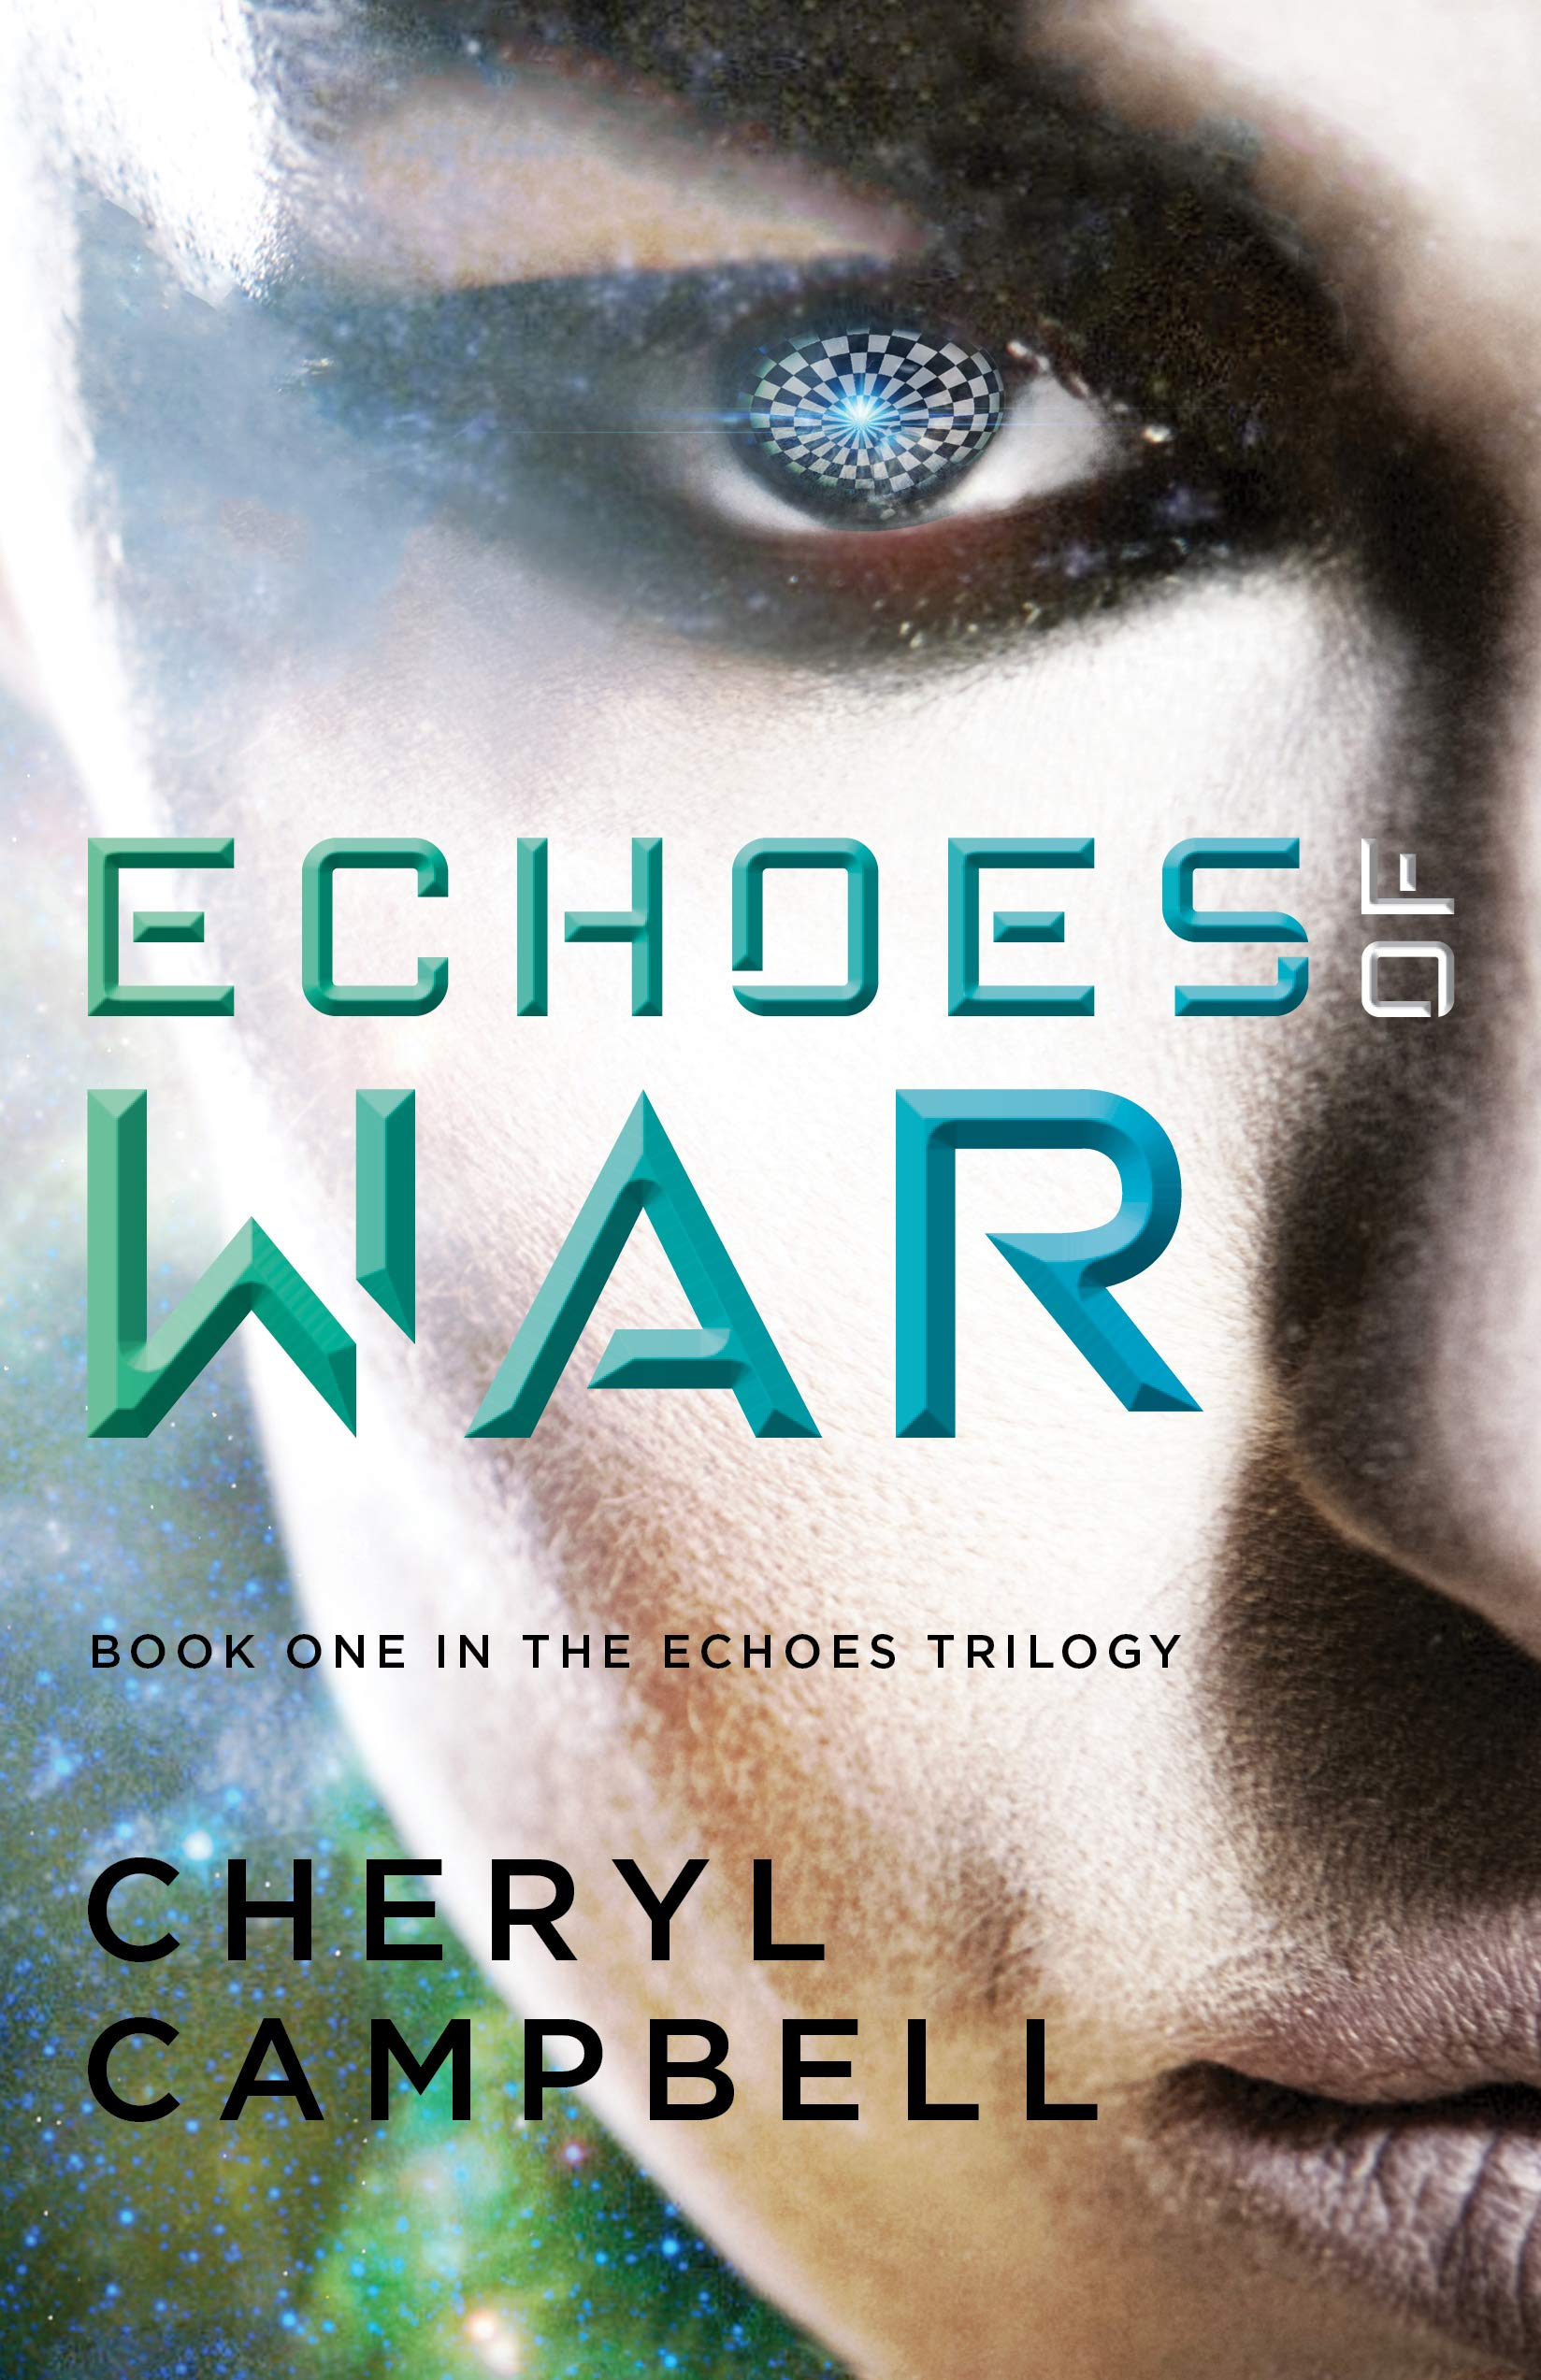 Image result for echoes of war book